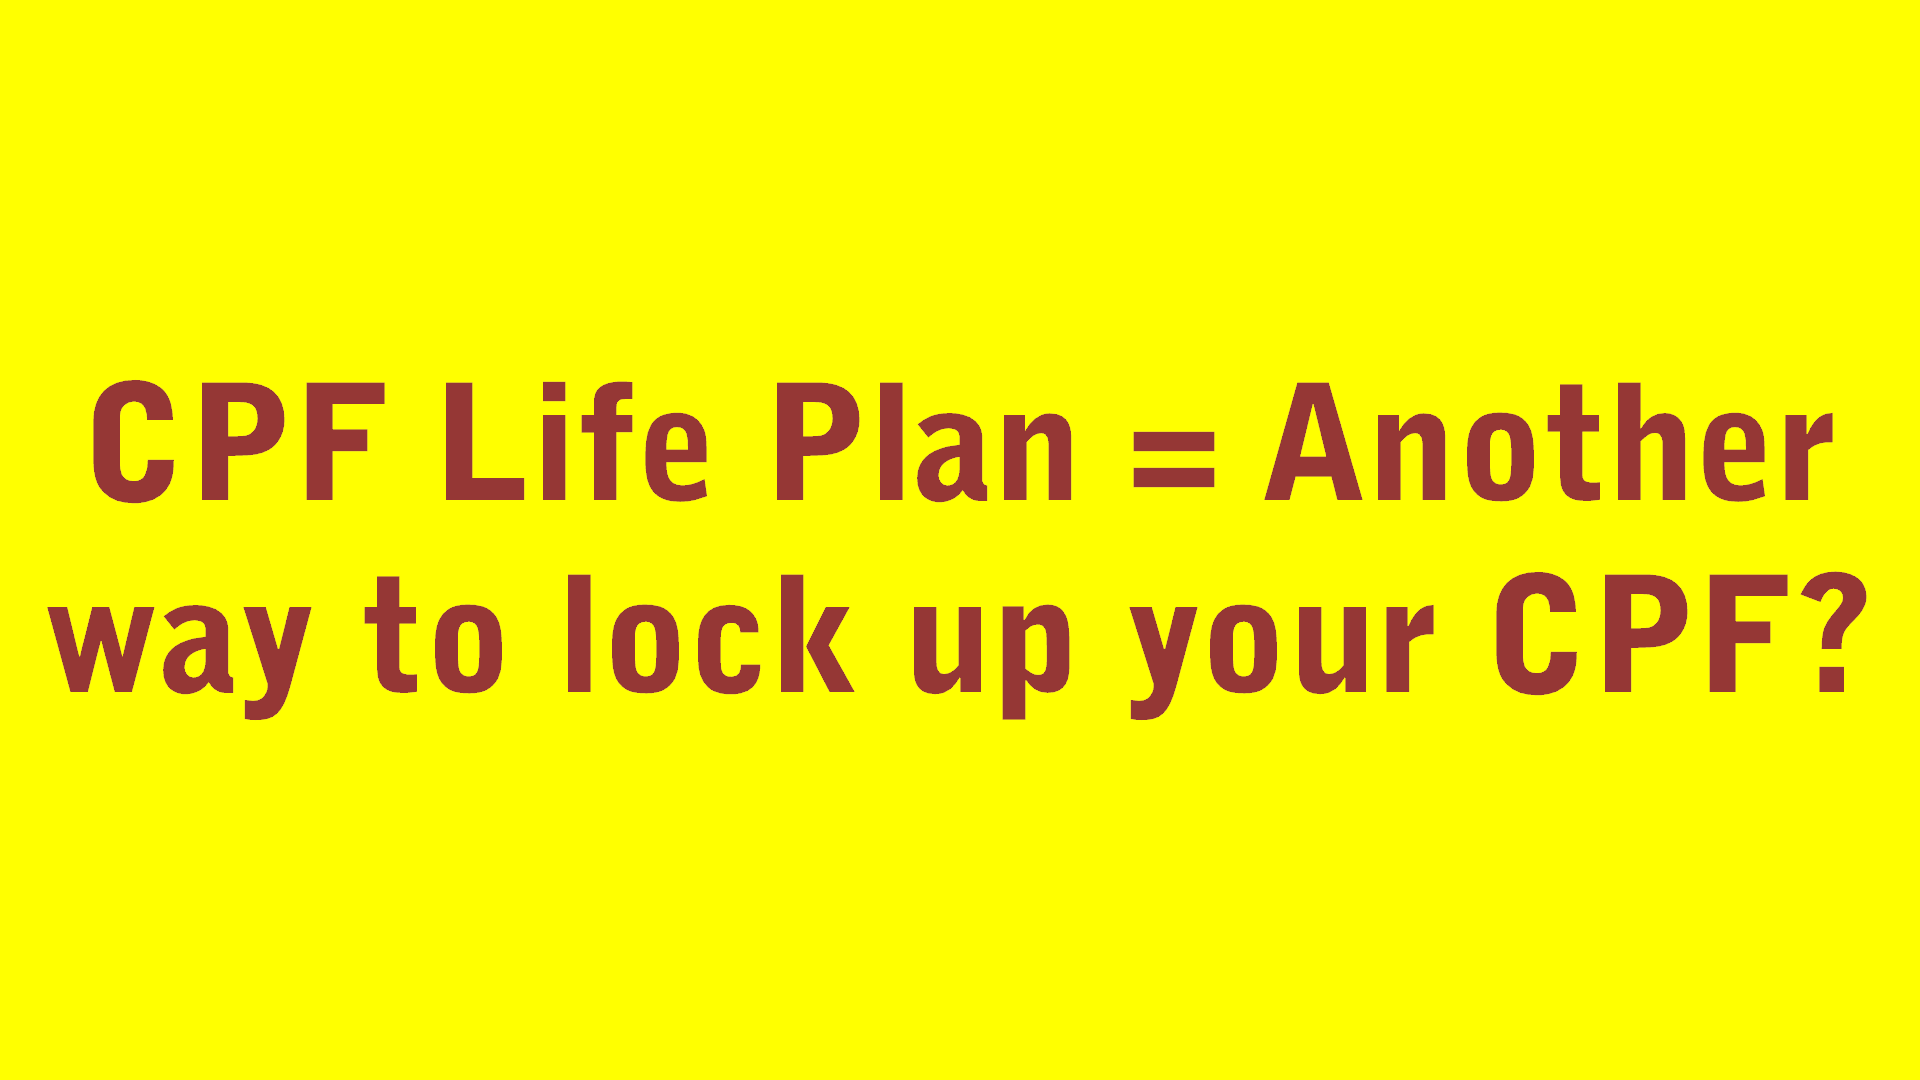 CPF Life Plan = Another way to lock up your CPF.png